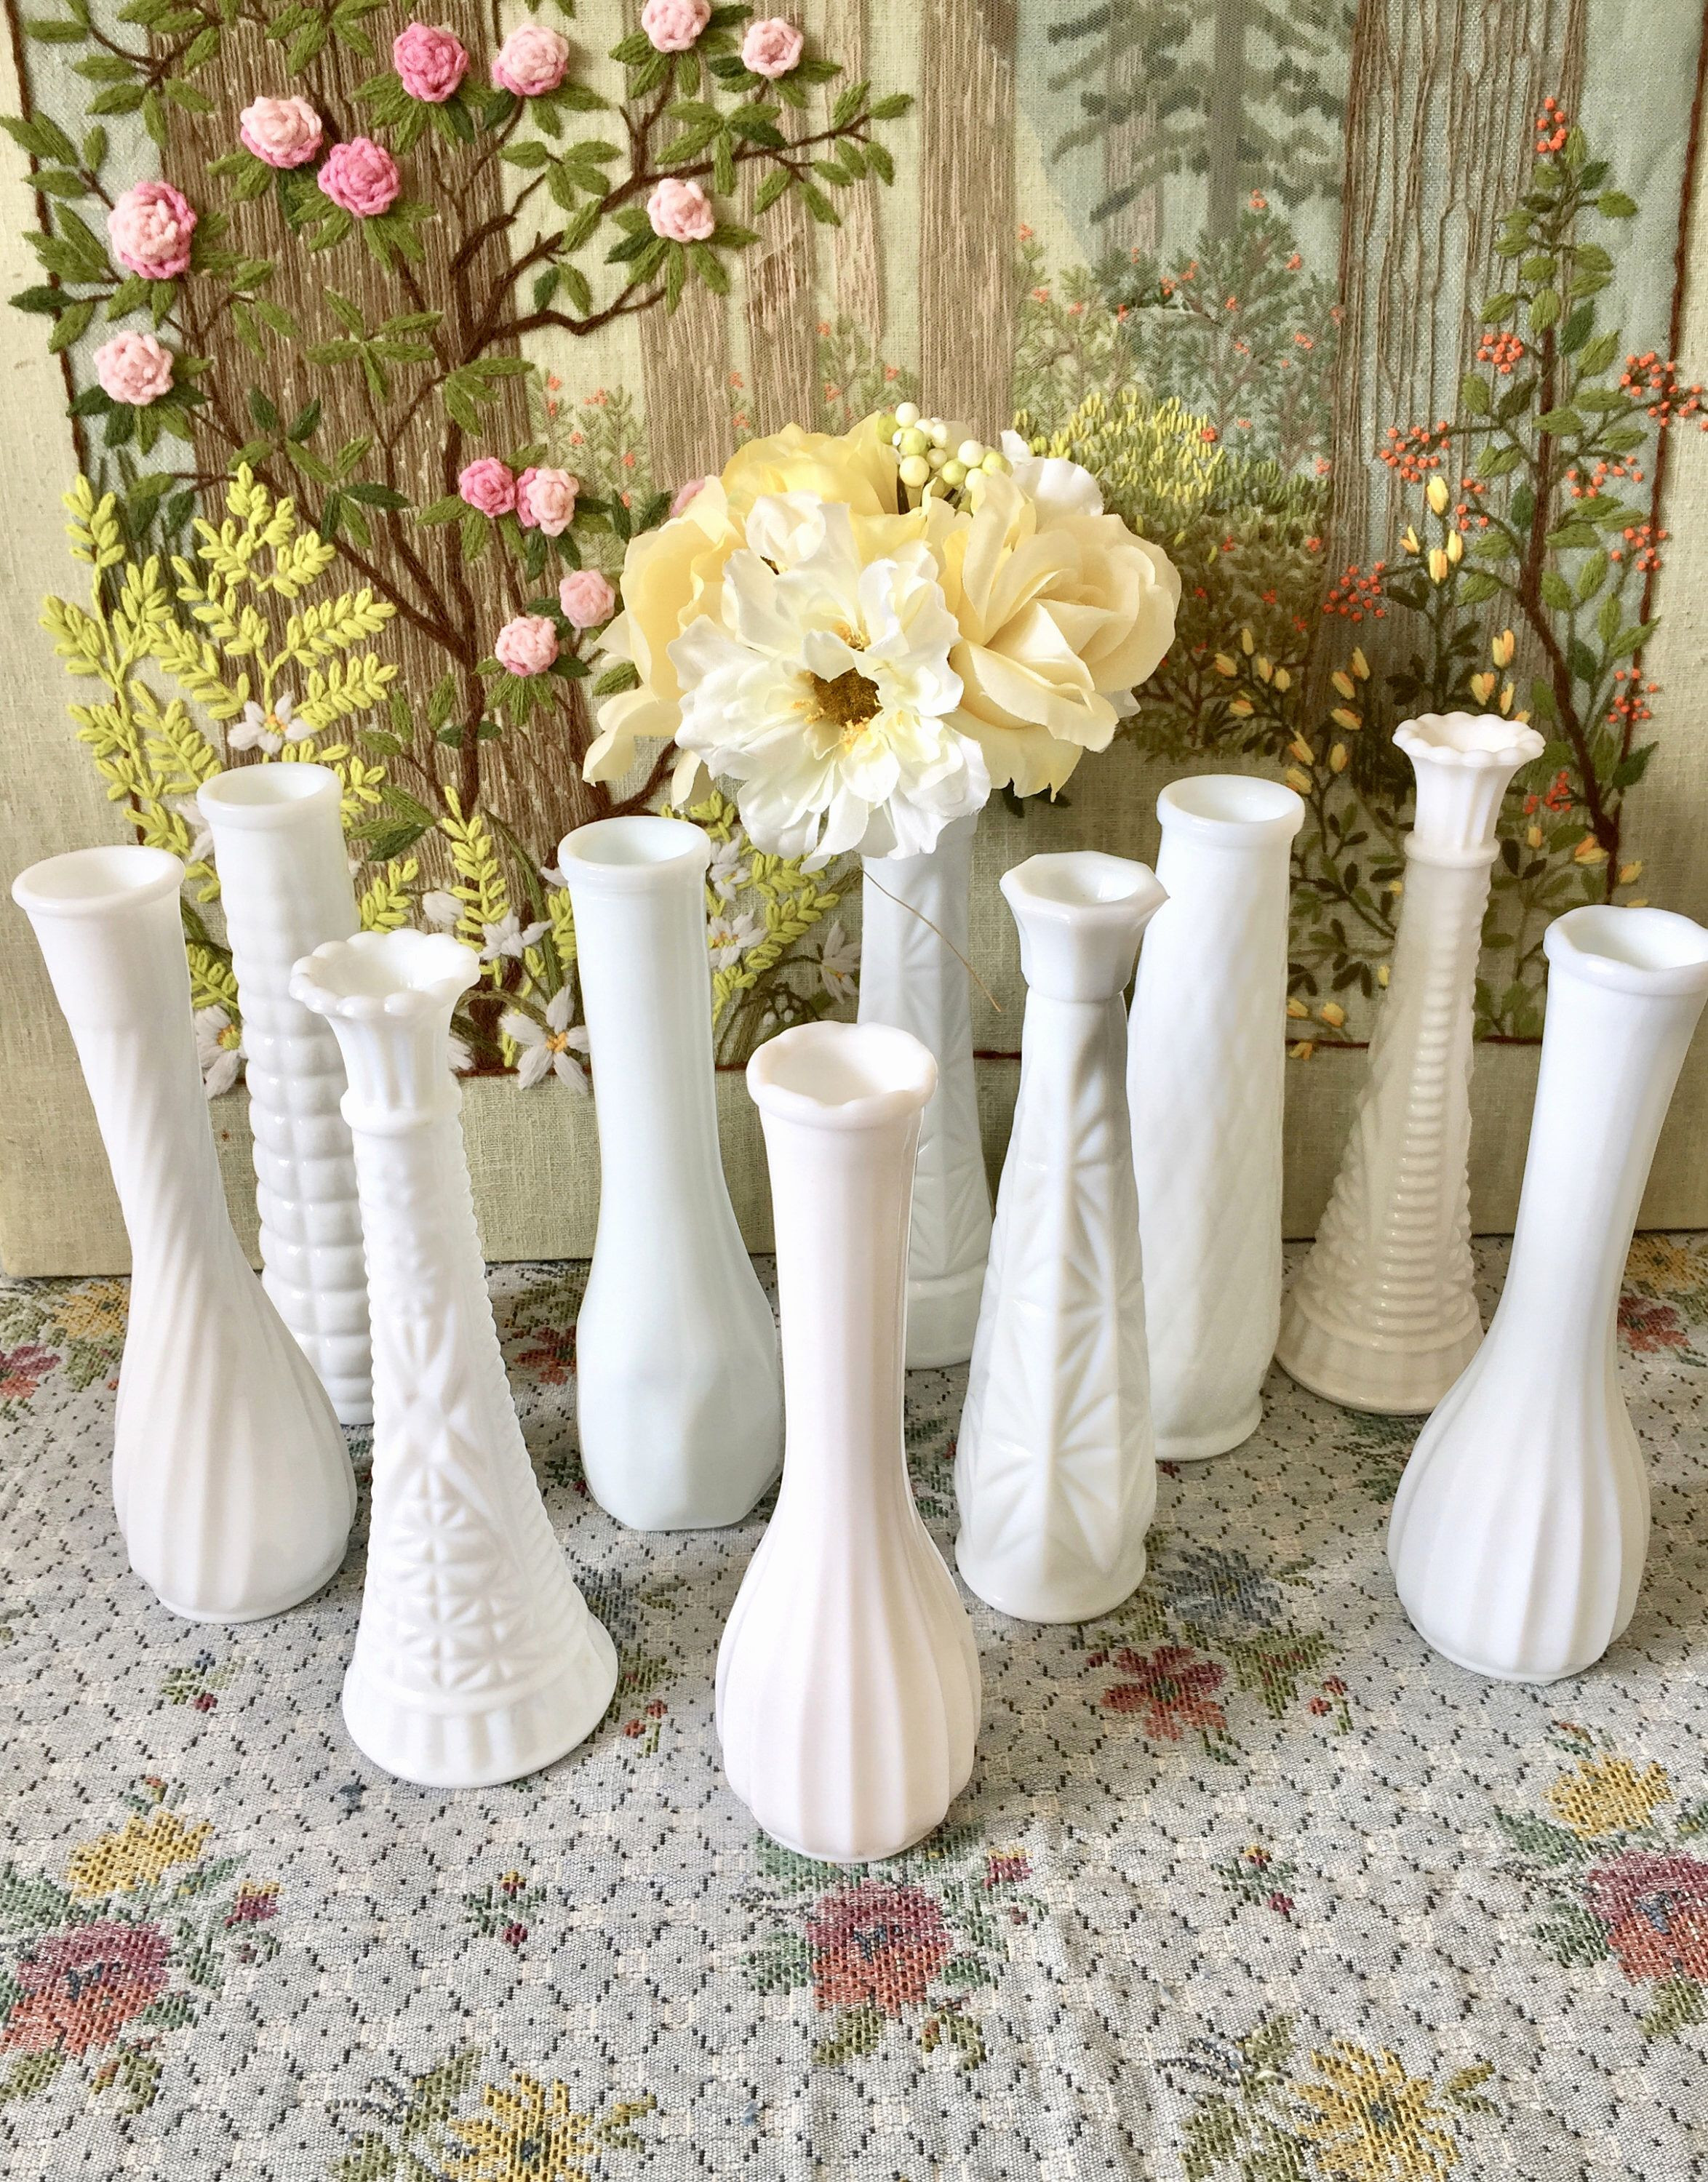 10 Popular Milk Vases for Centerpieces 2021 free download milk vases for centerpieces of 40 glass vases bulk the weekly world intended for centerpiece vases in bulk vase and cellar image avorcor